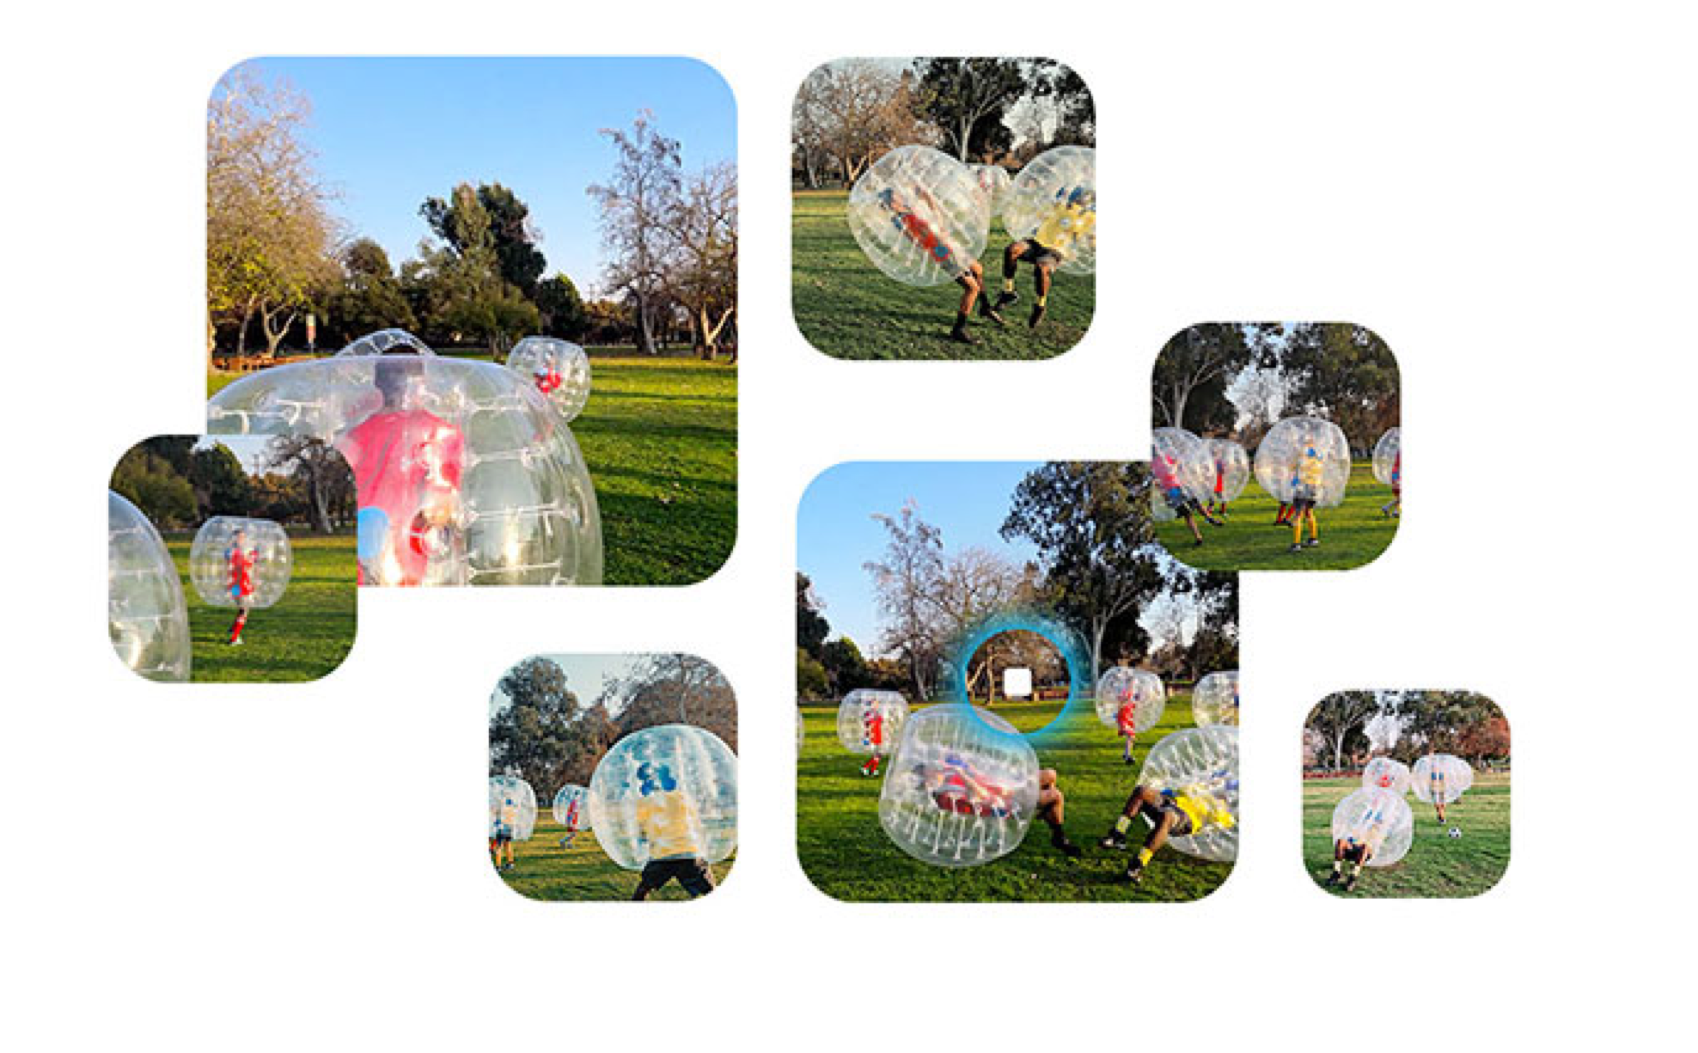 Multiple bubbles of images of children playing